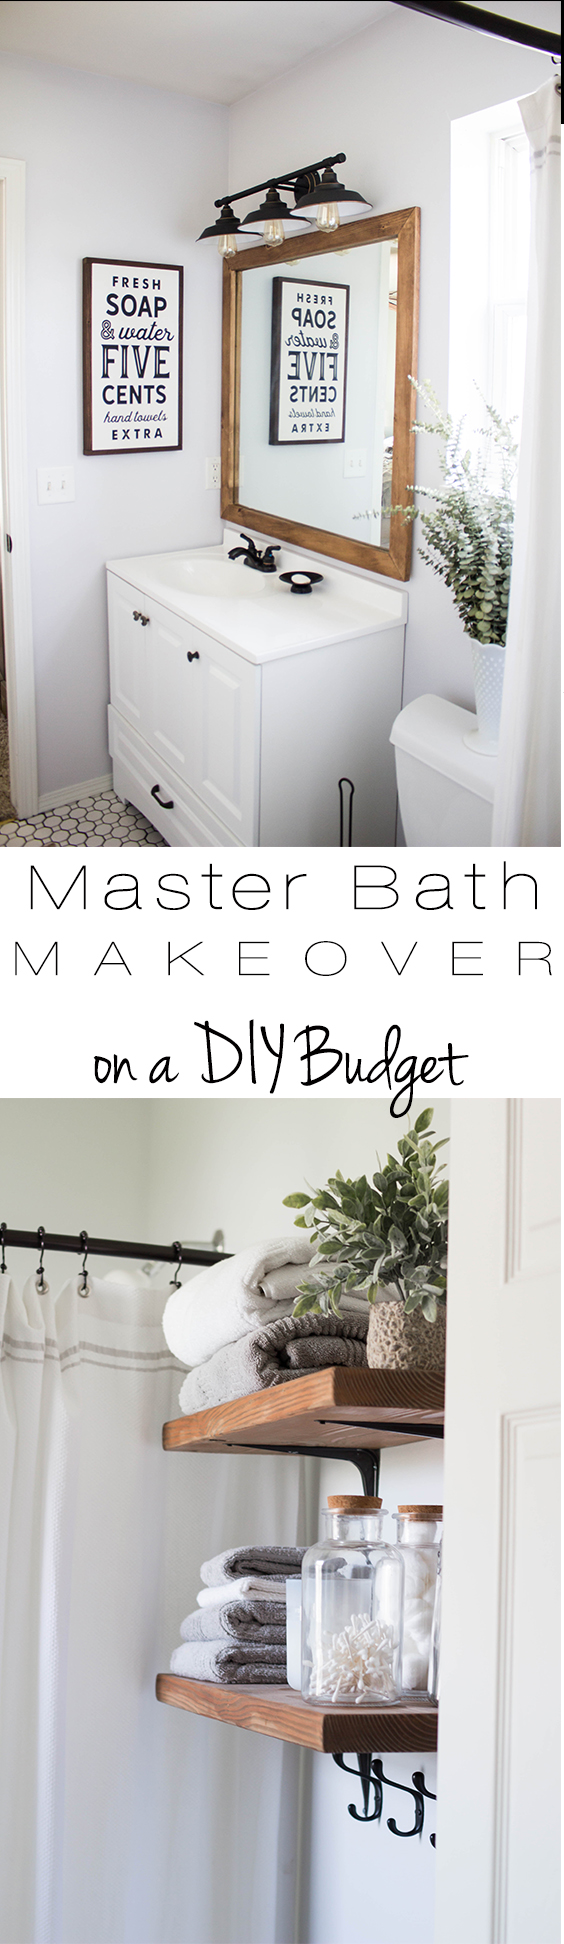 Master Bath Makeover on a DIY Budget